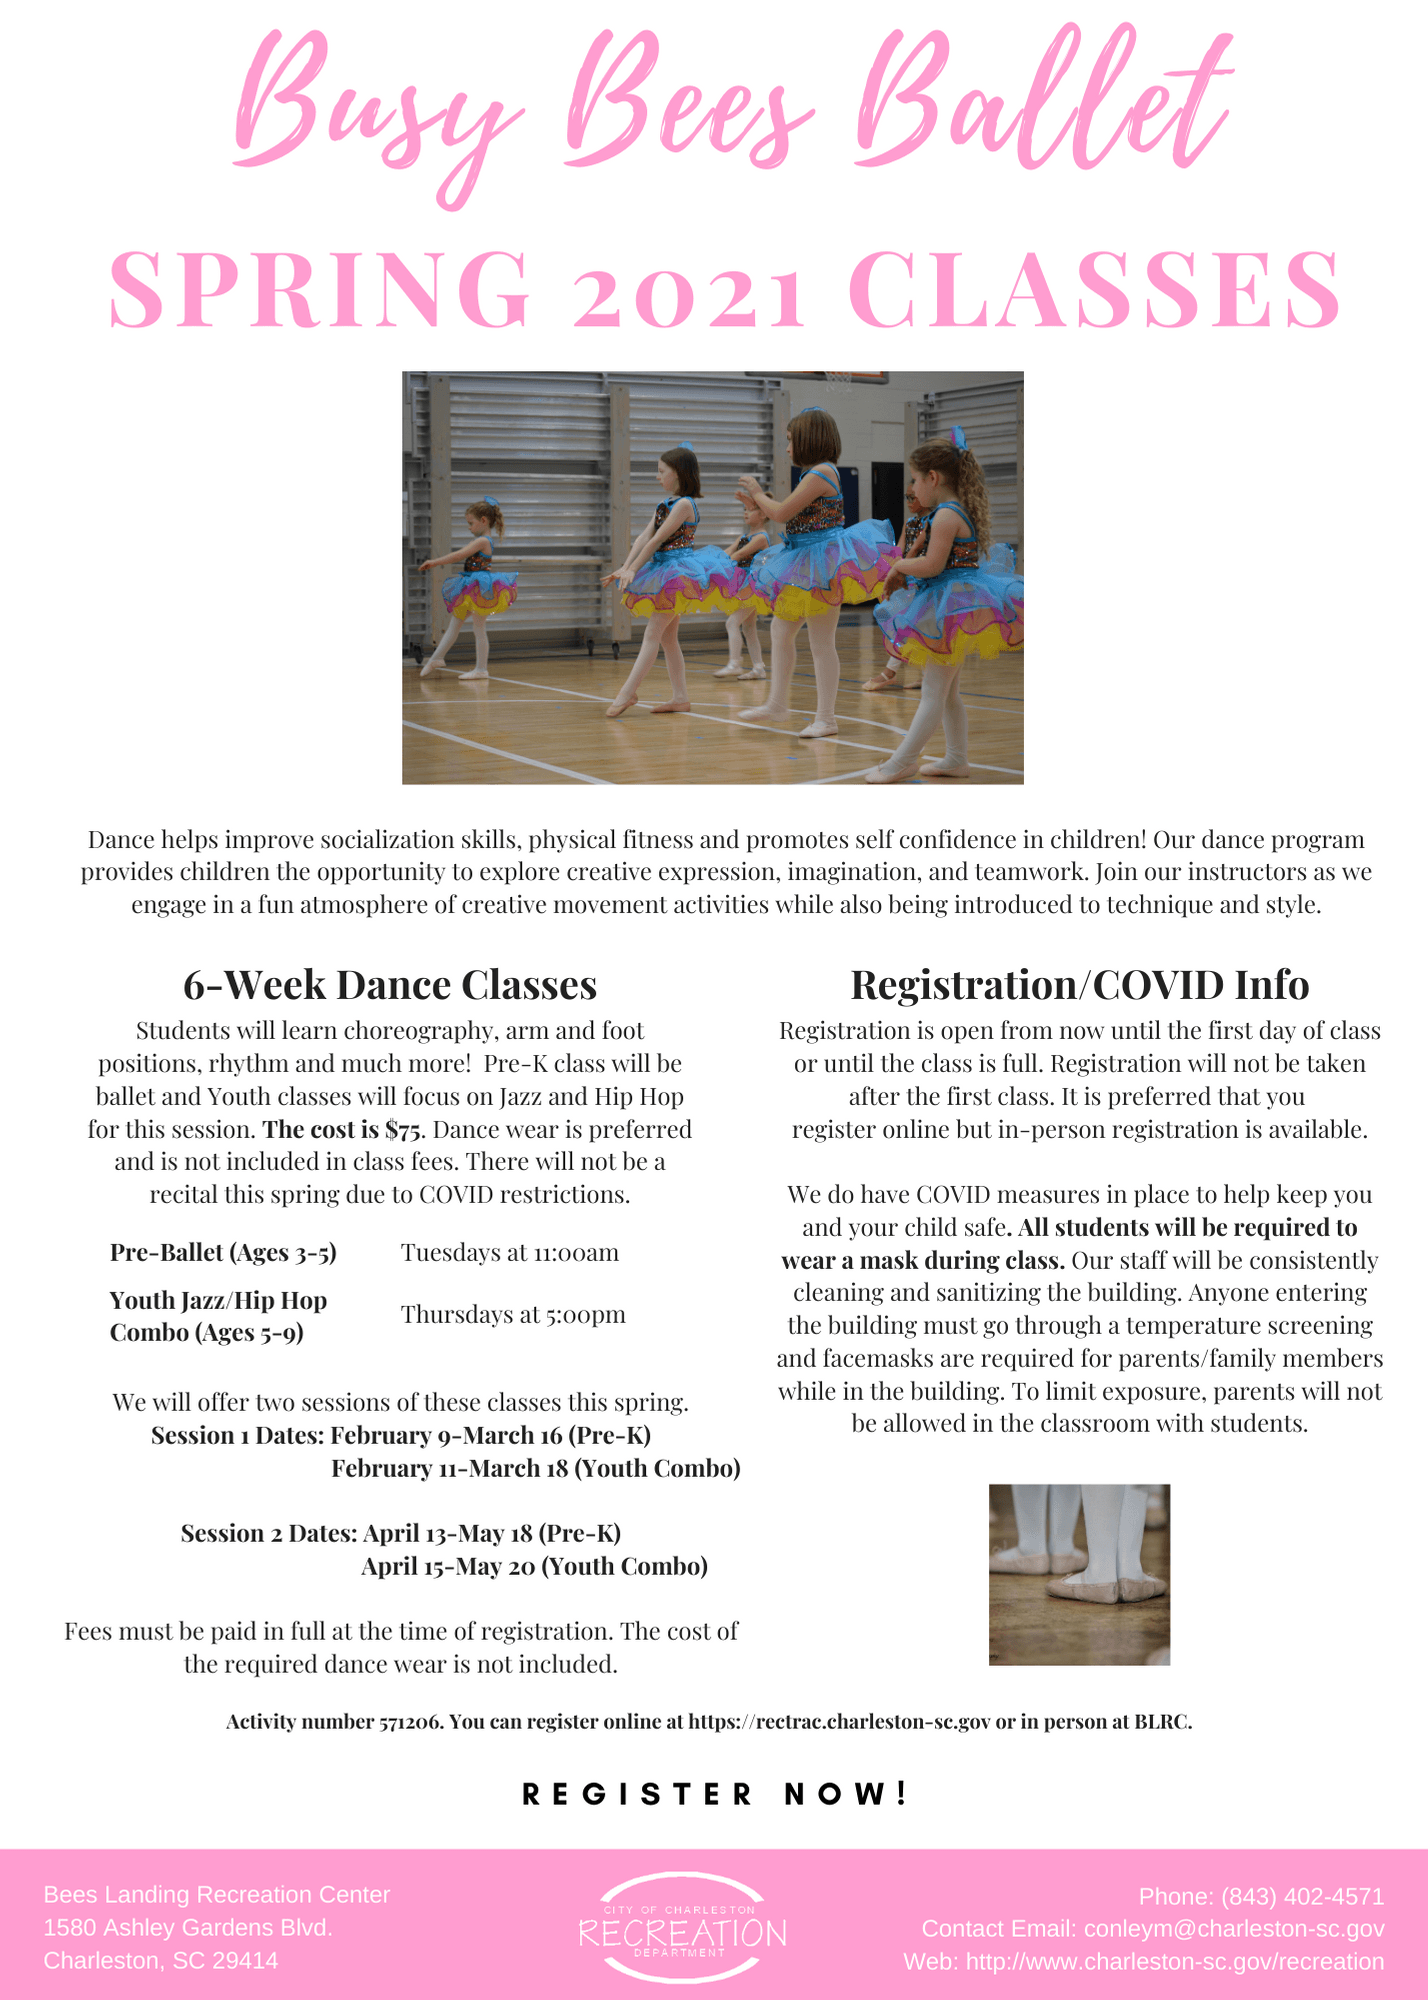 Busy Bees Ballet Spring 2020 Classes Opens in new window